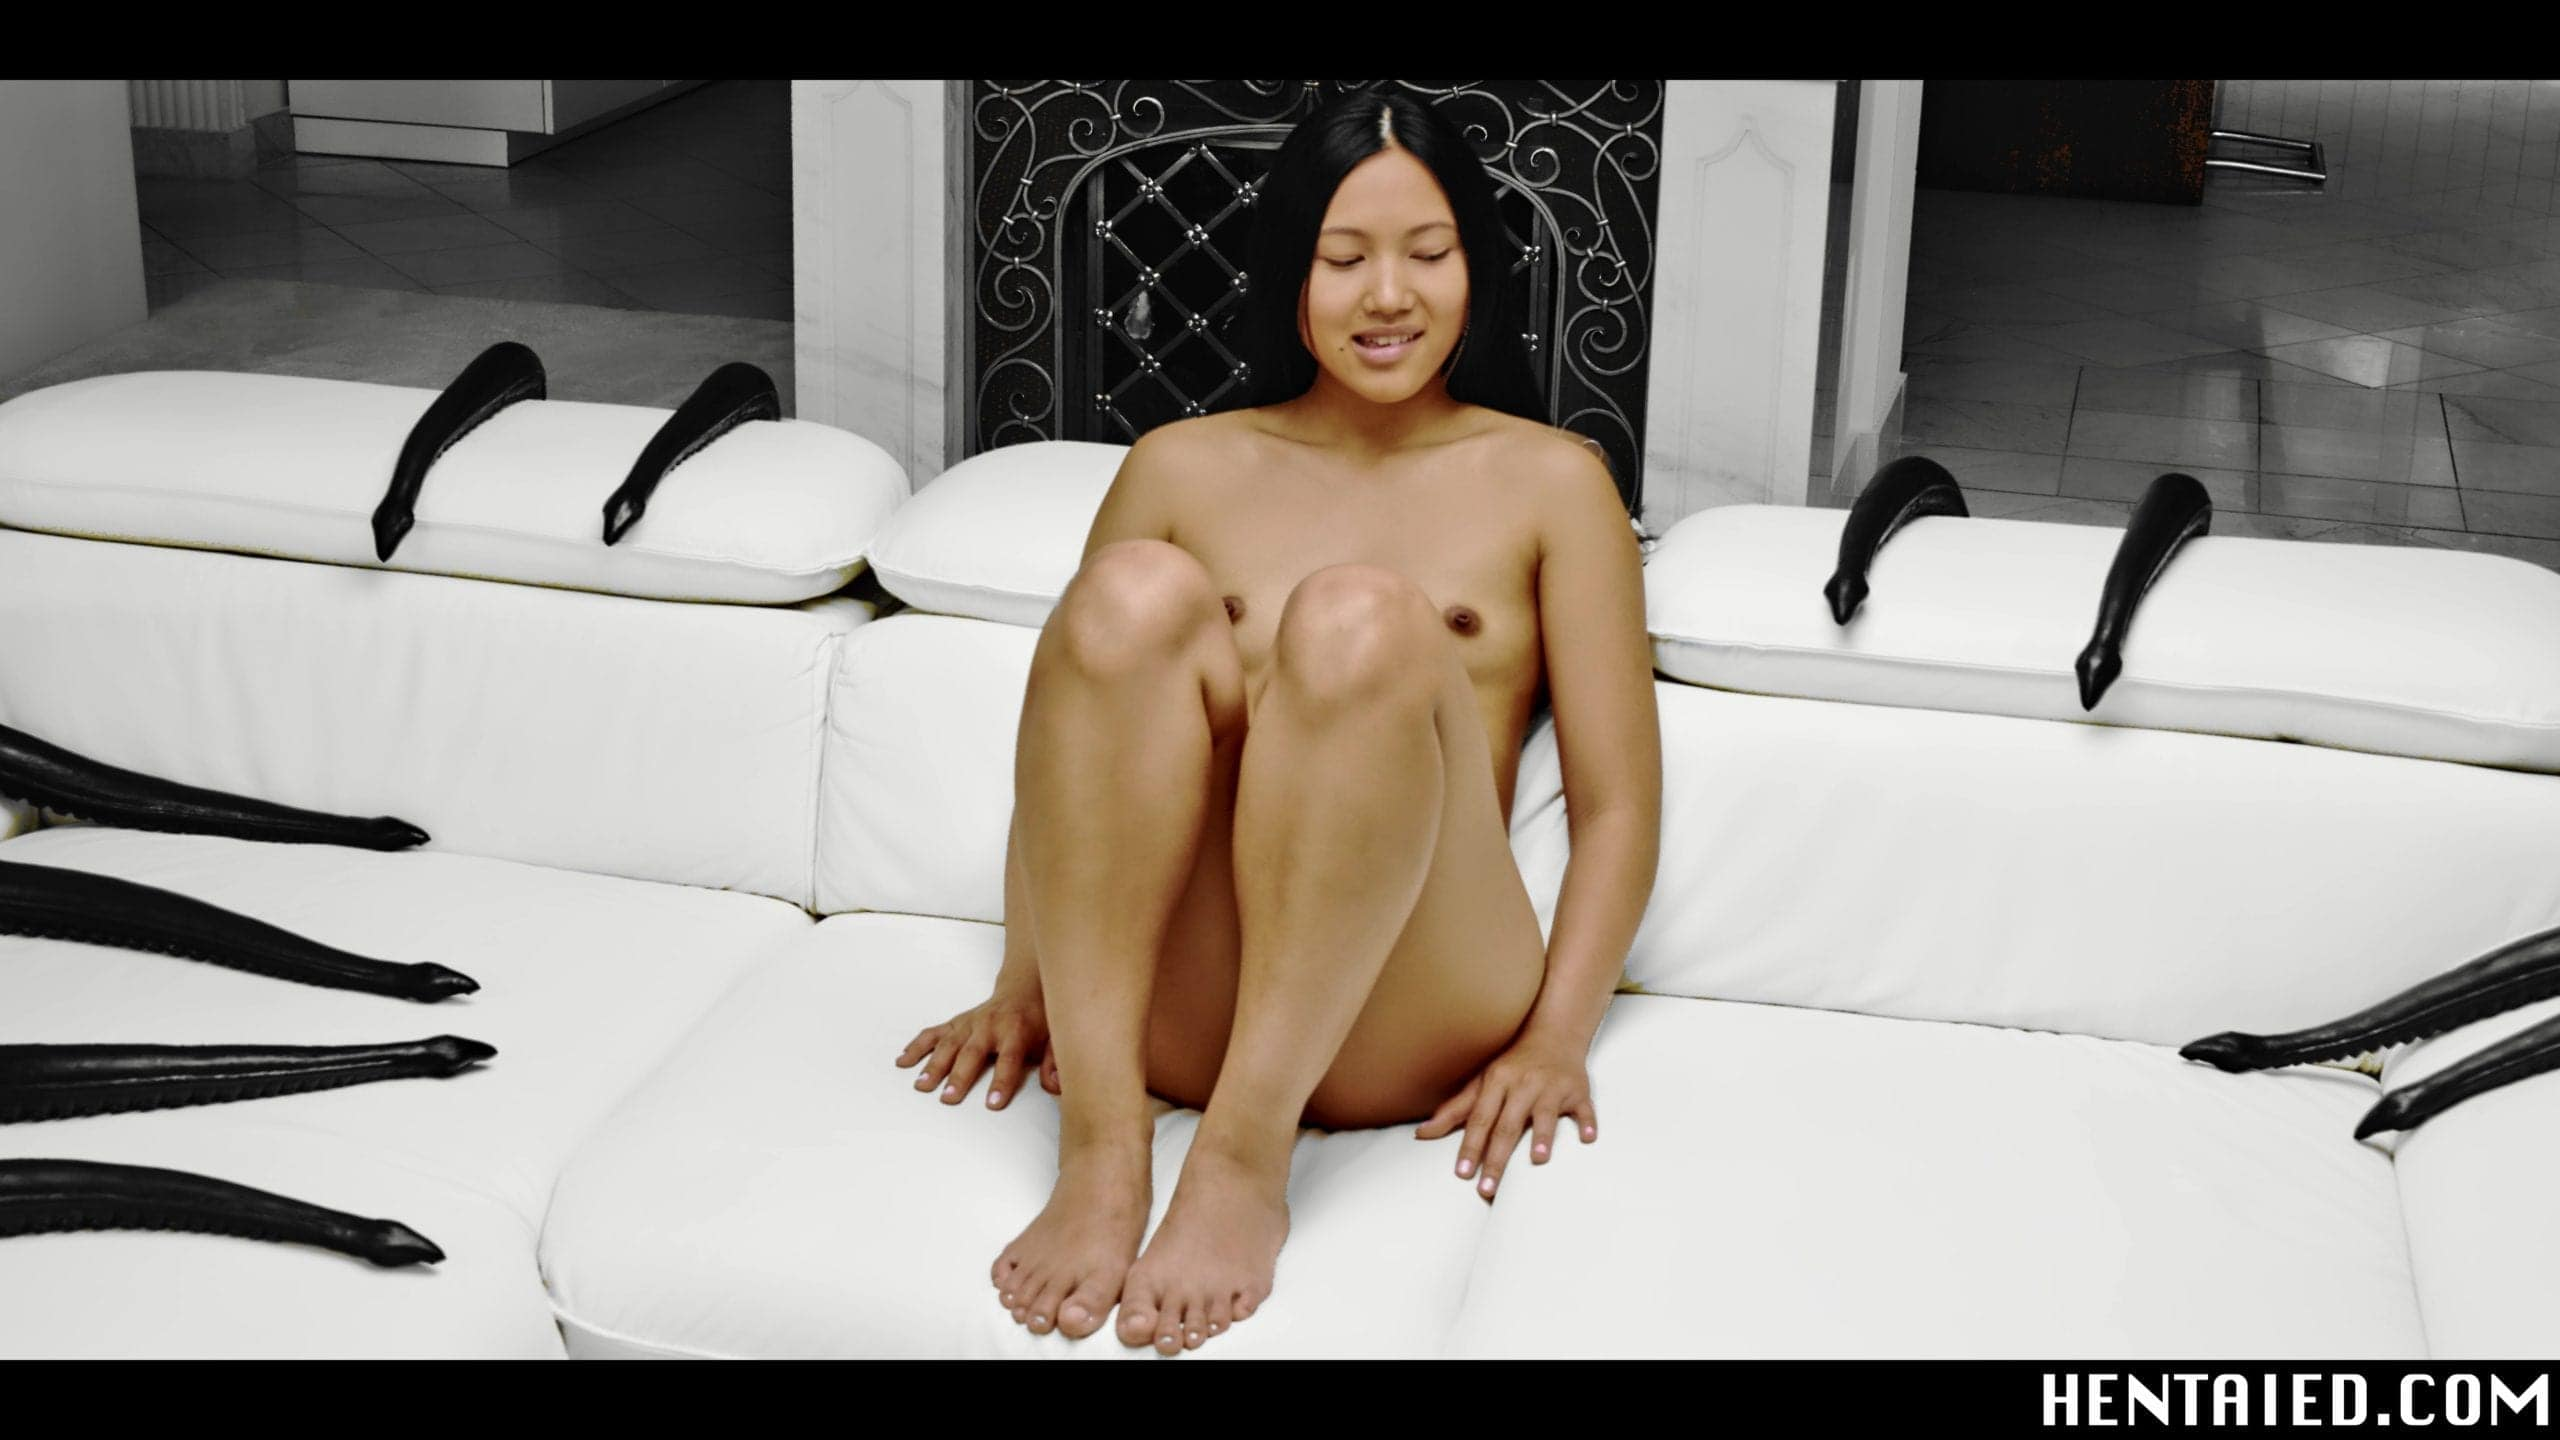 May Thai asian girl sitting on a white couch